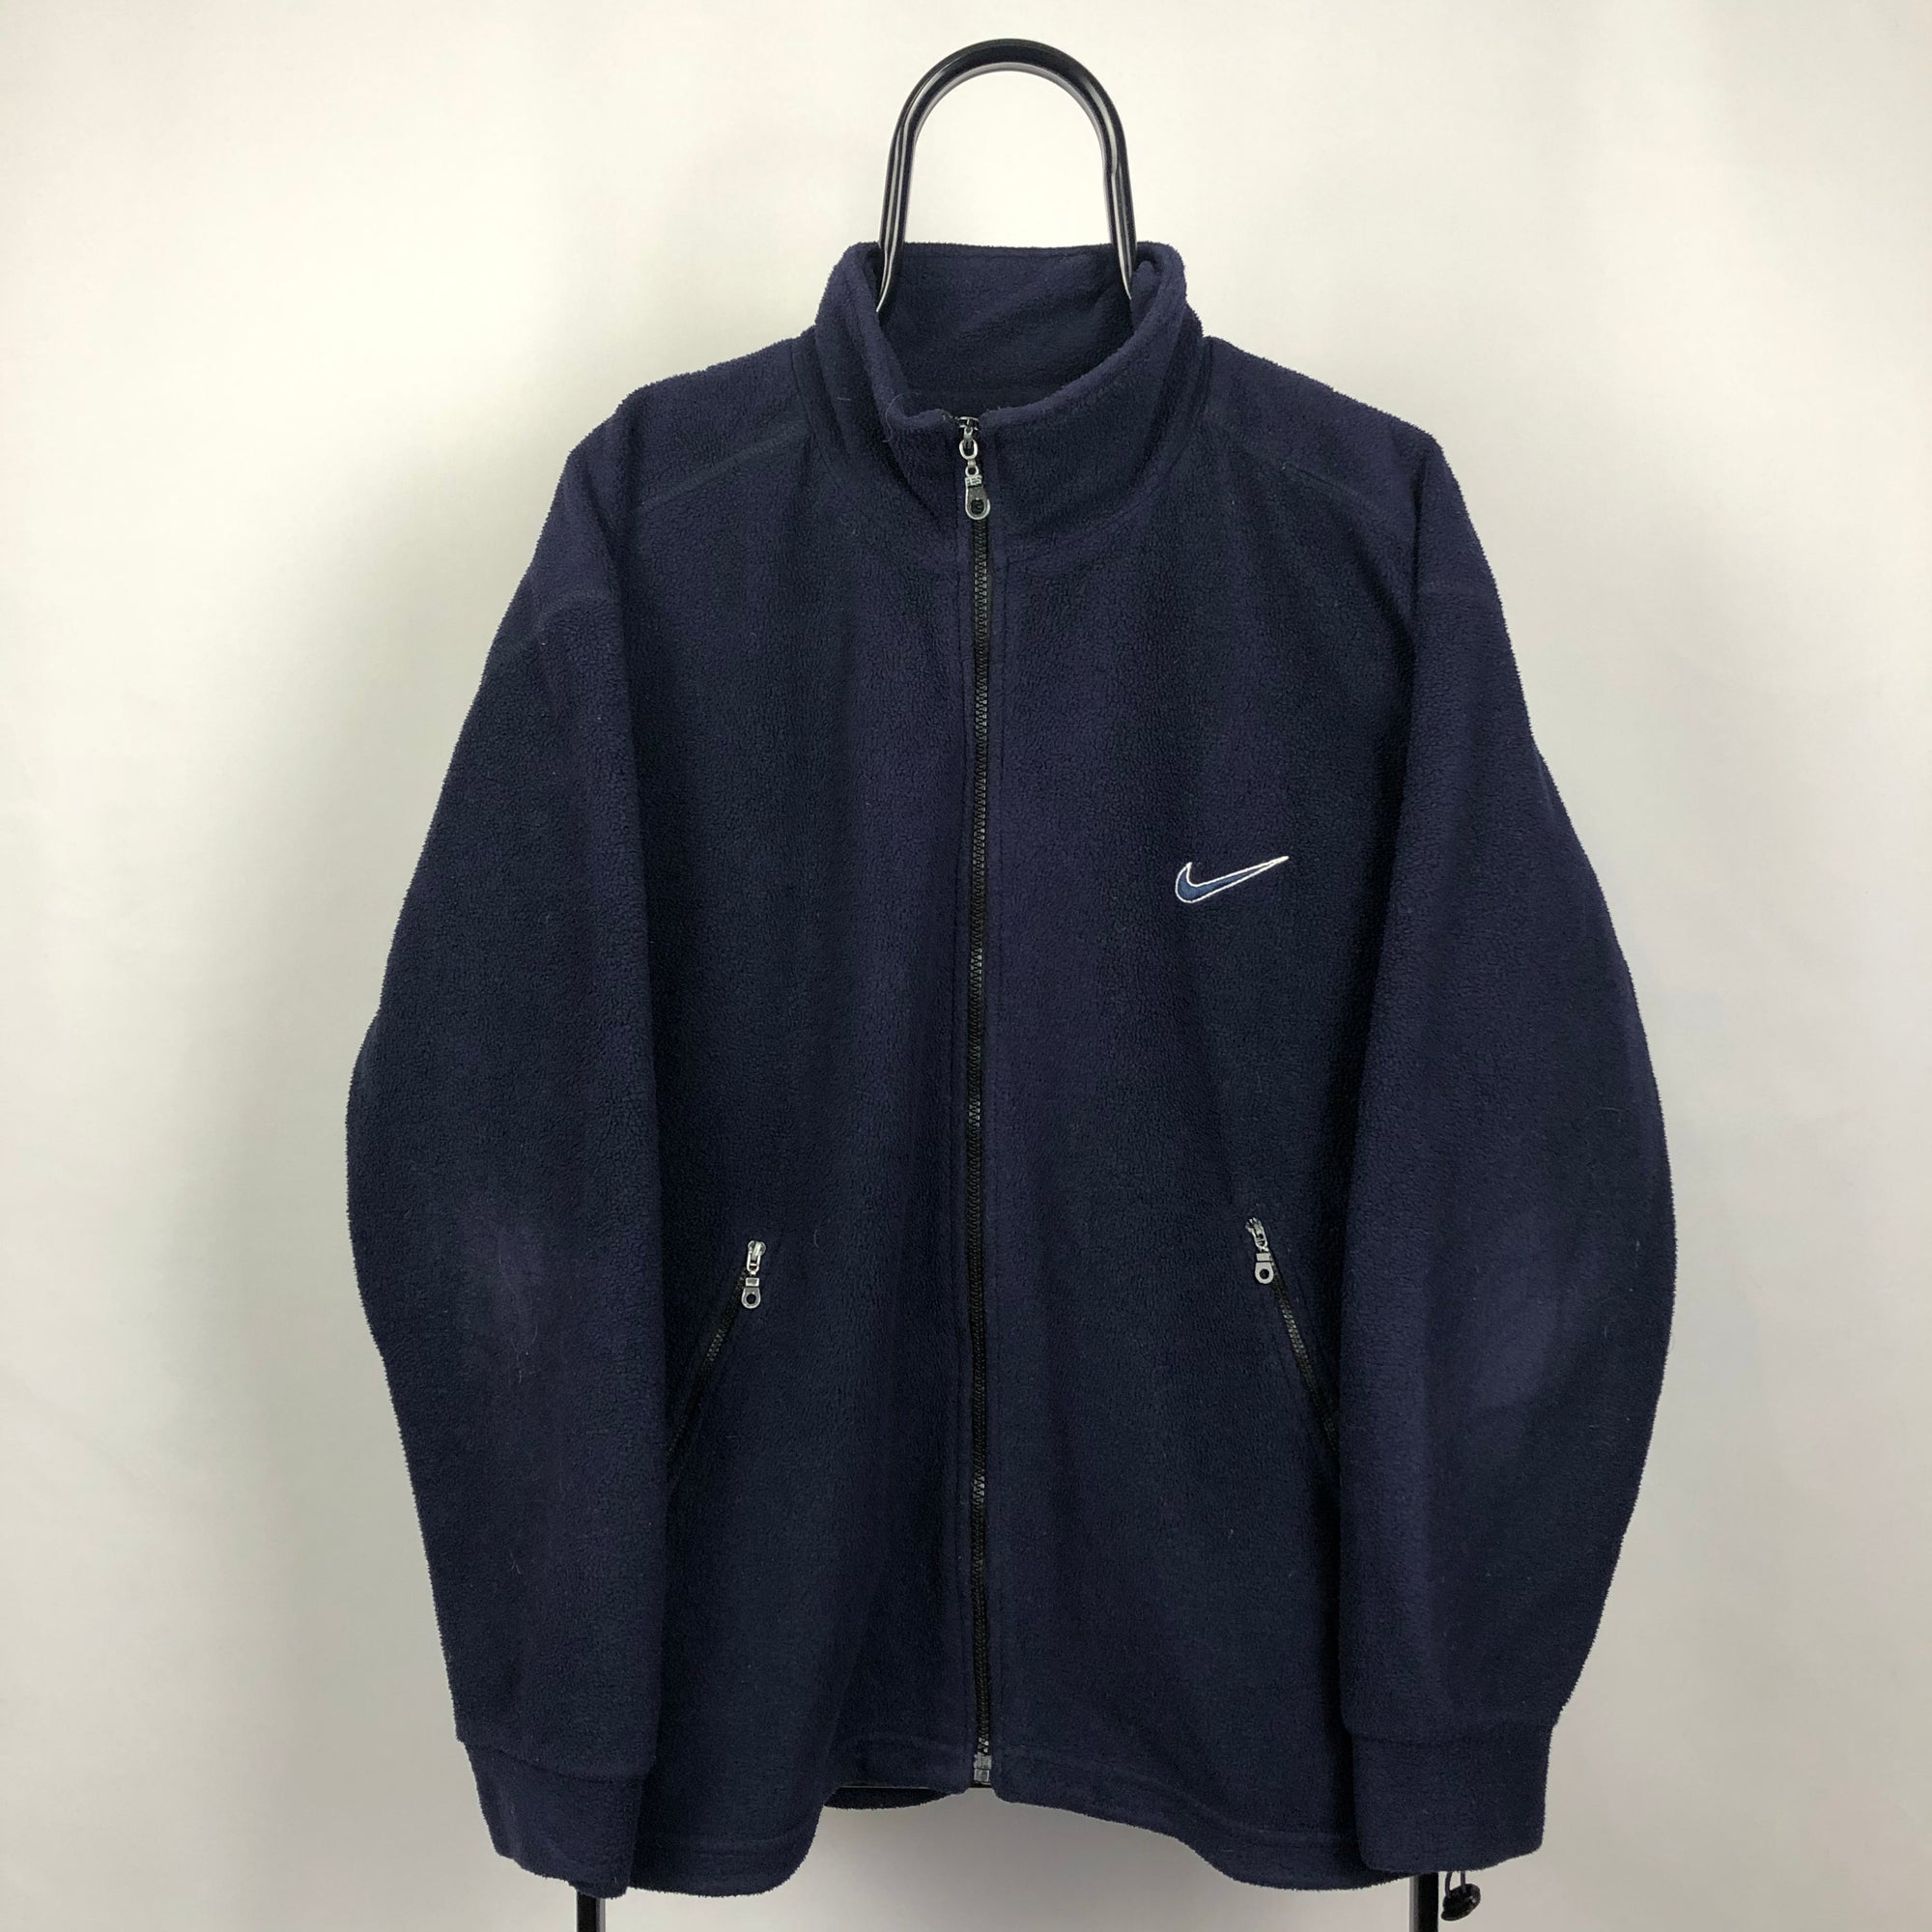 Nike Fleece in Navy - Men's Large/Women's XL